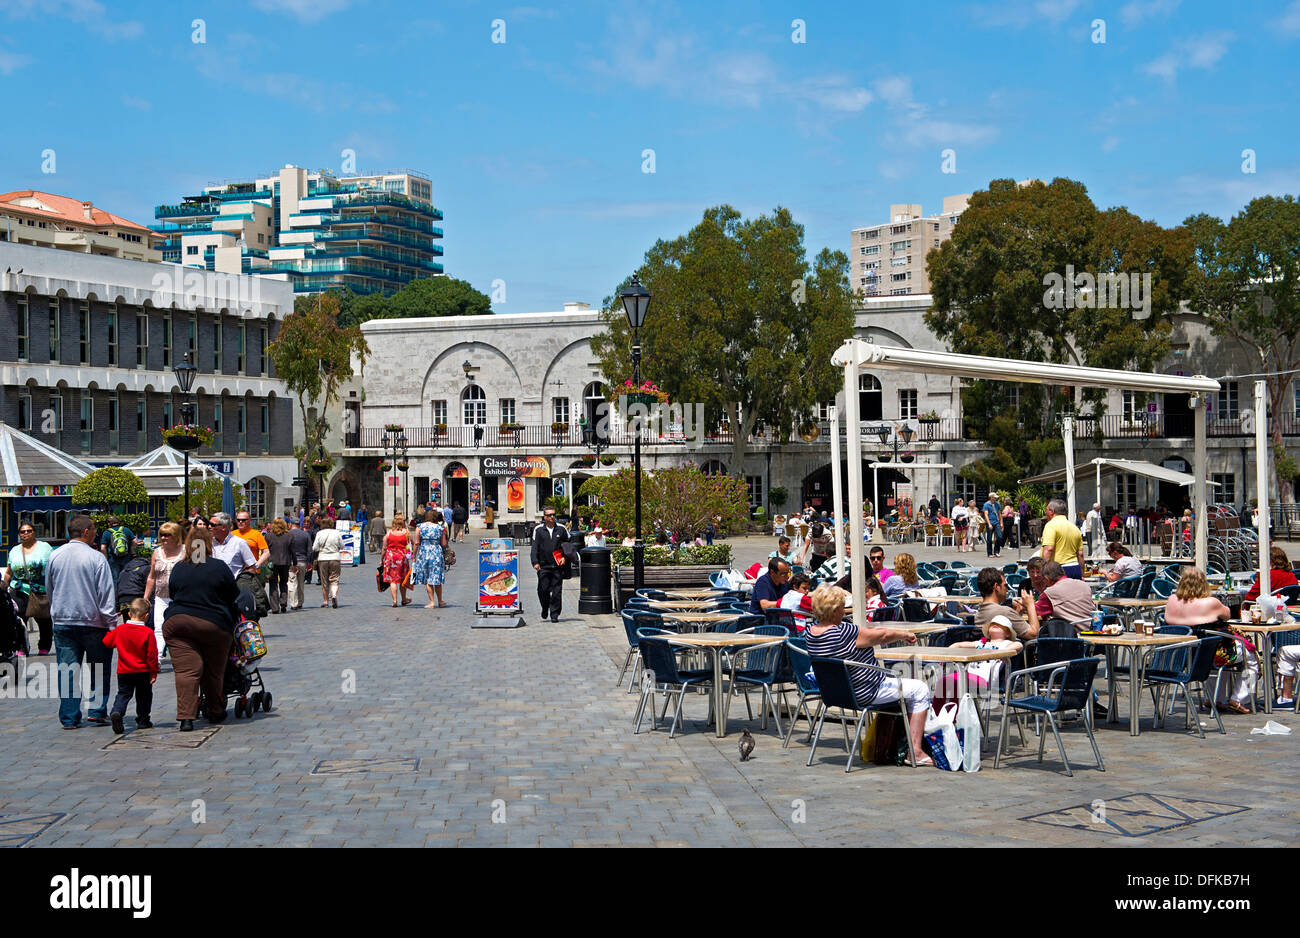 At Grand Casemates Square, Gibraltar - Stock Image